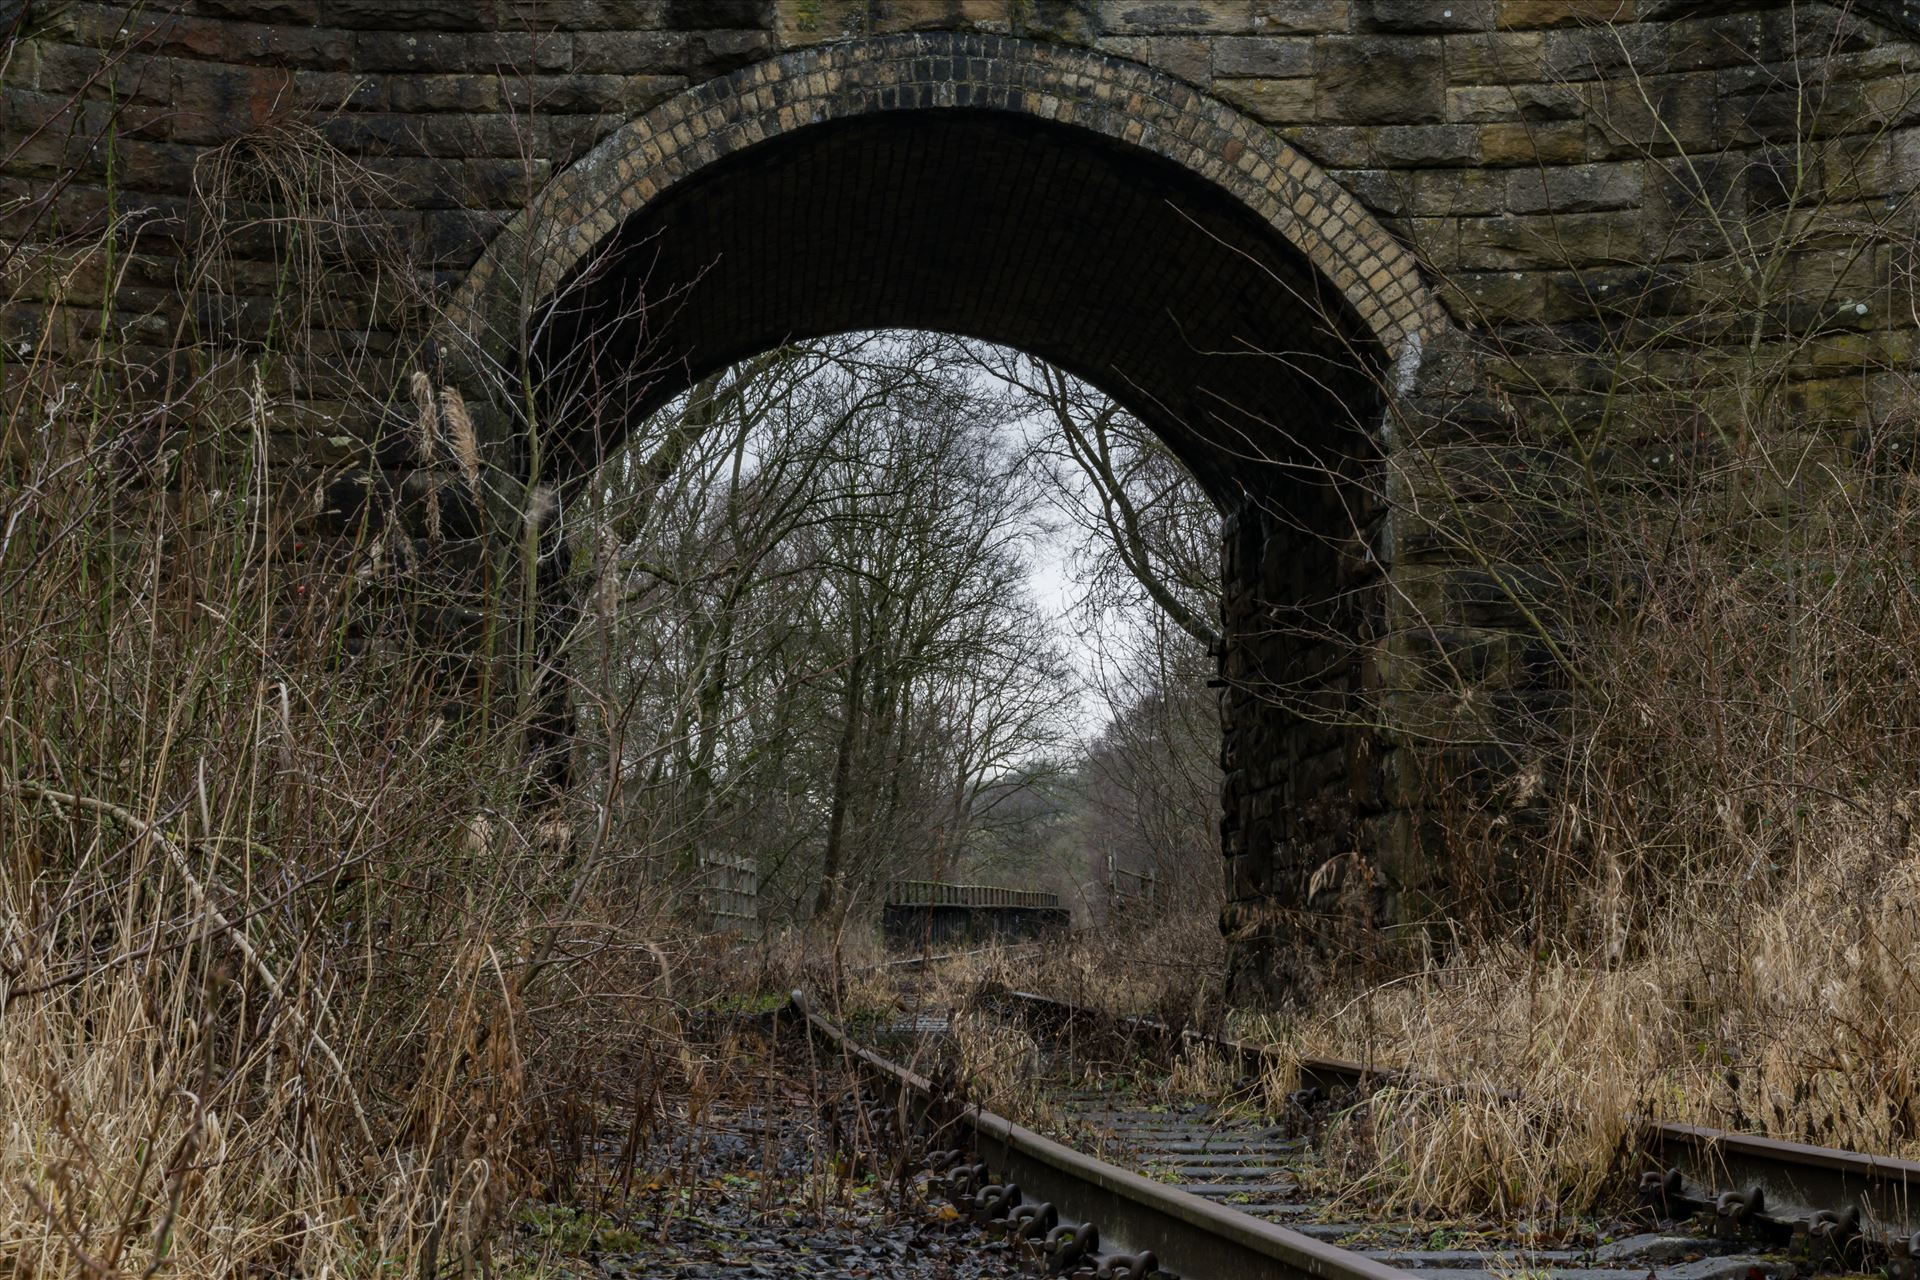 Abandoned Railway Bridge and Tunnel - Taken on 11/01/18 near Stanhope by AJ Stoves Photography